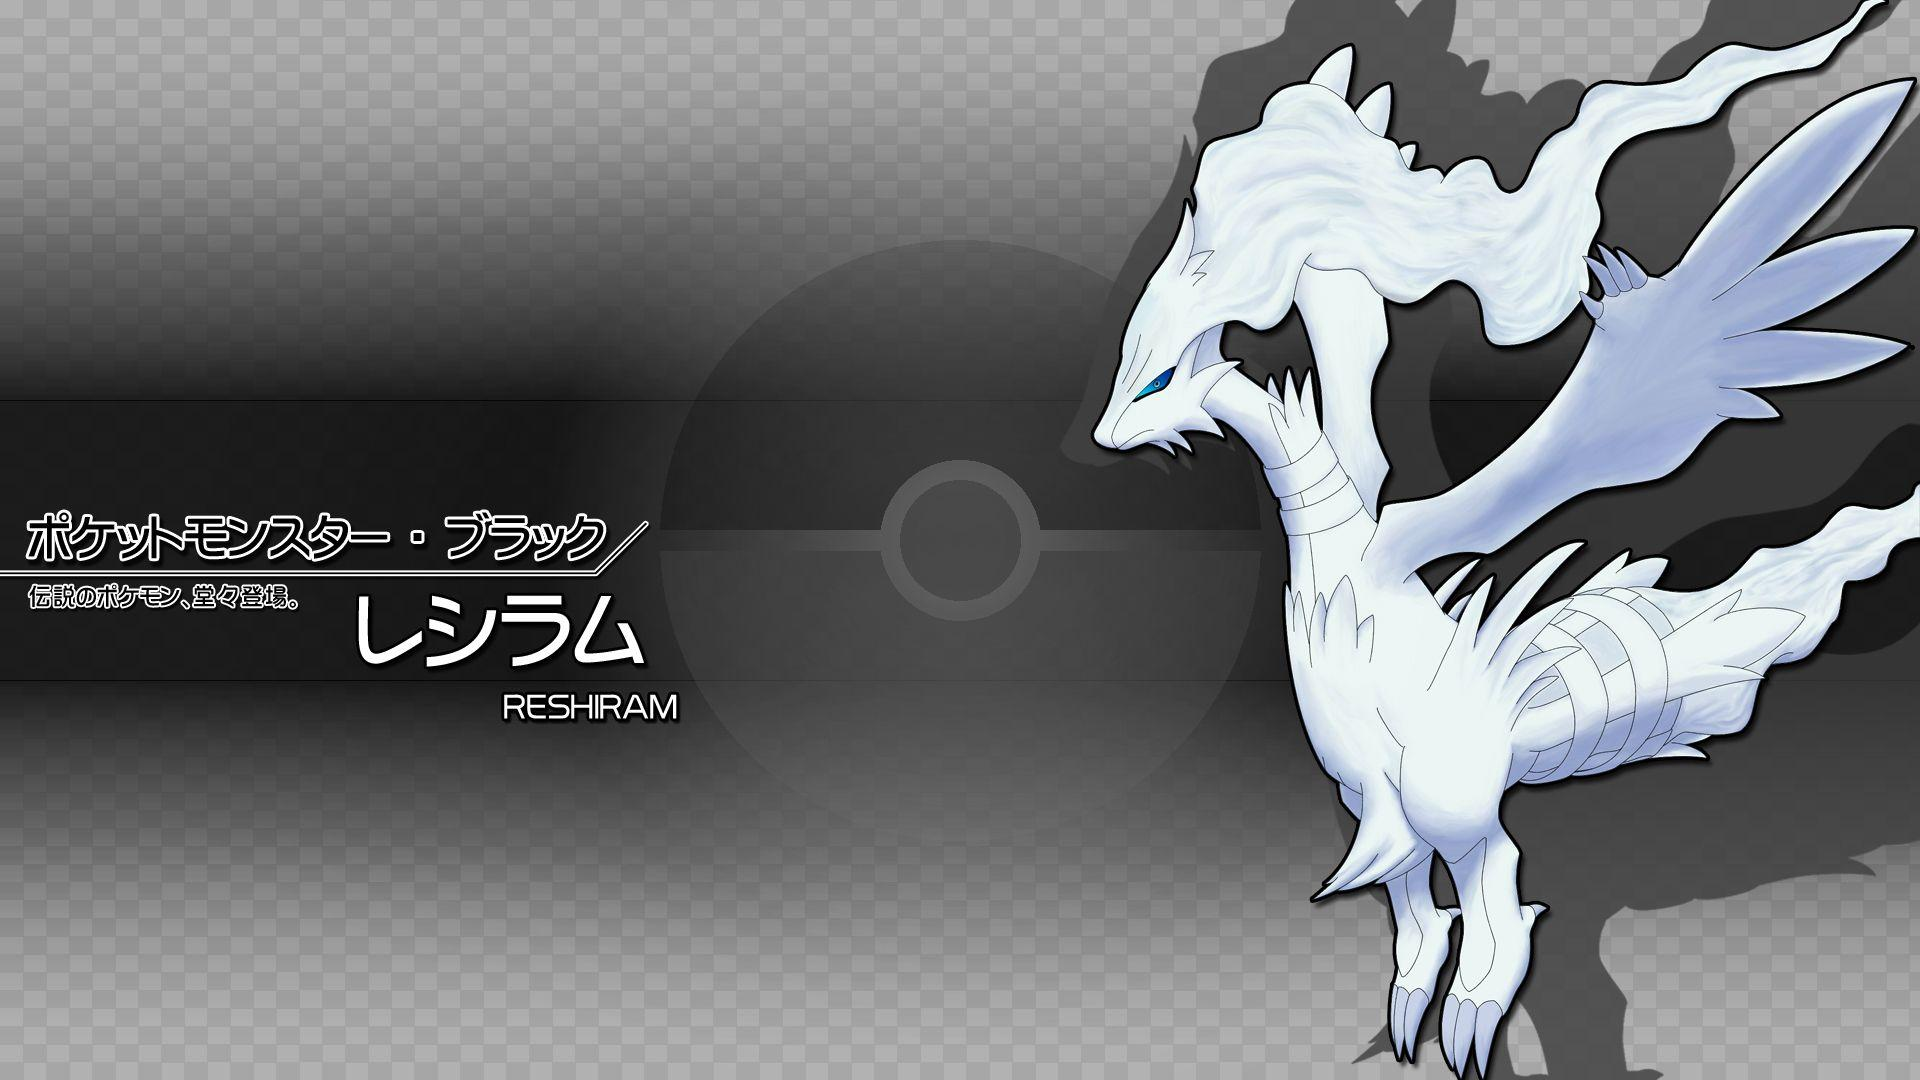 Reshiram - Pokémon - HD Wallpaper #289128 - Zerochan Anime Image Board